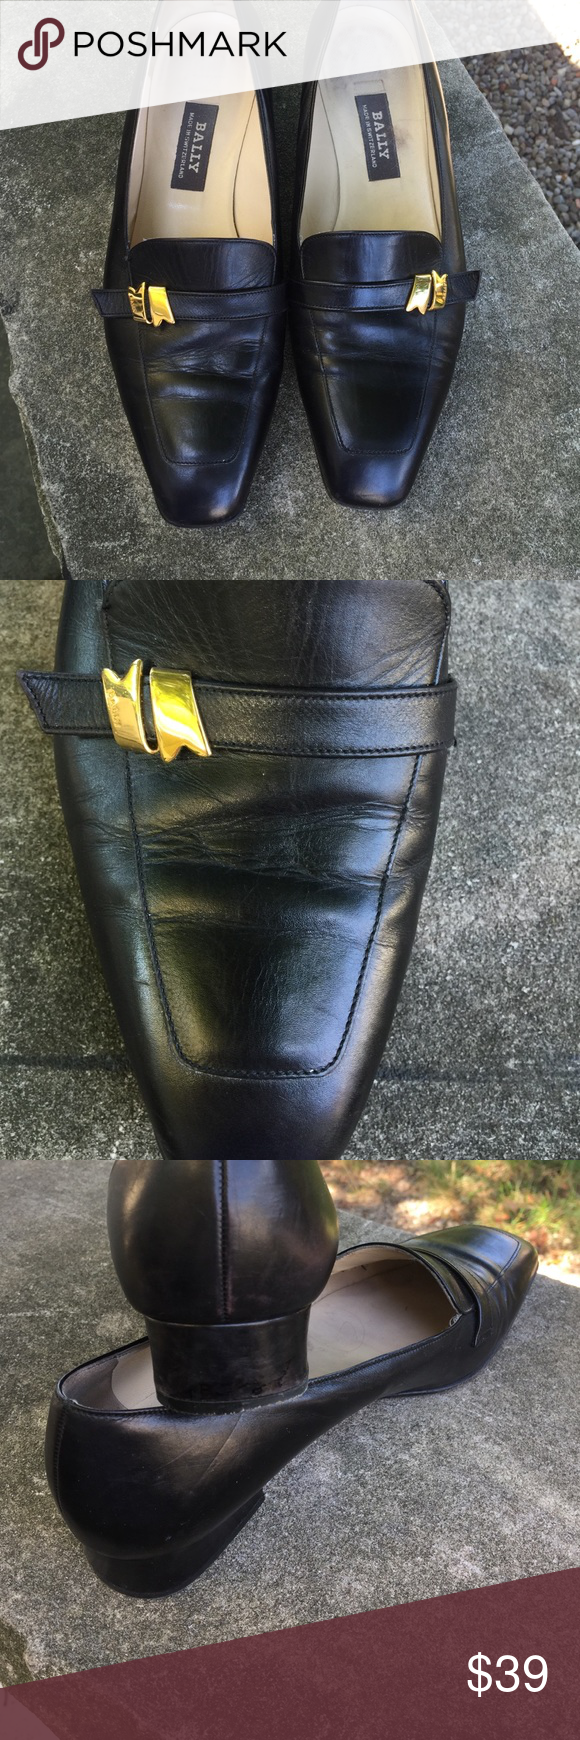 Bally Loafers Bally of Switzerland classic black leather loafer. In excellent condition. Purchased in Zurich. European size 5. US size 7.5. Note: photo 4 is a similar loafer that was on Instagram; it is not a photo of the Bally loafer I'm selling Bally of Switzerland Shoes Flats & Loafers